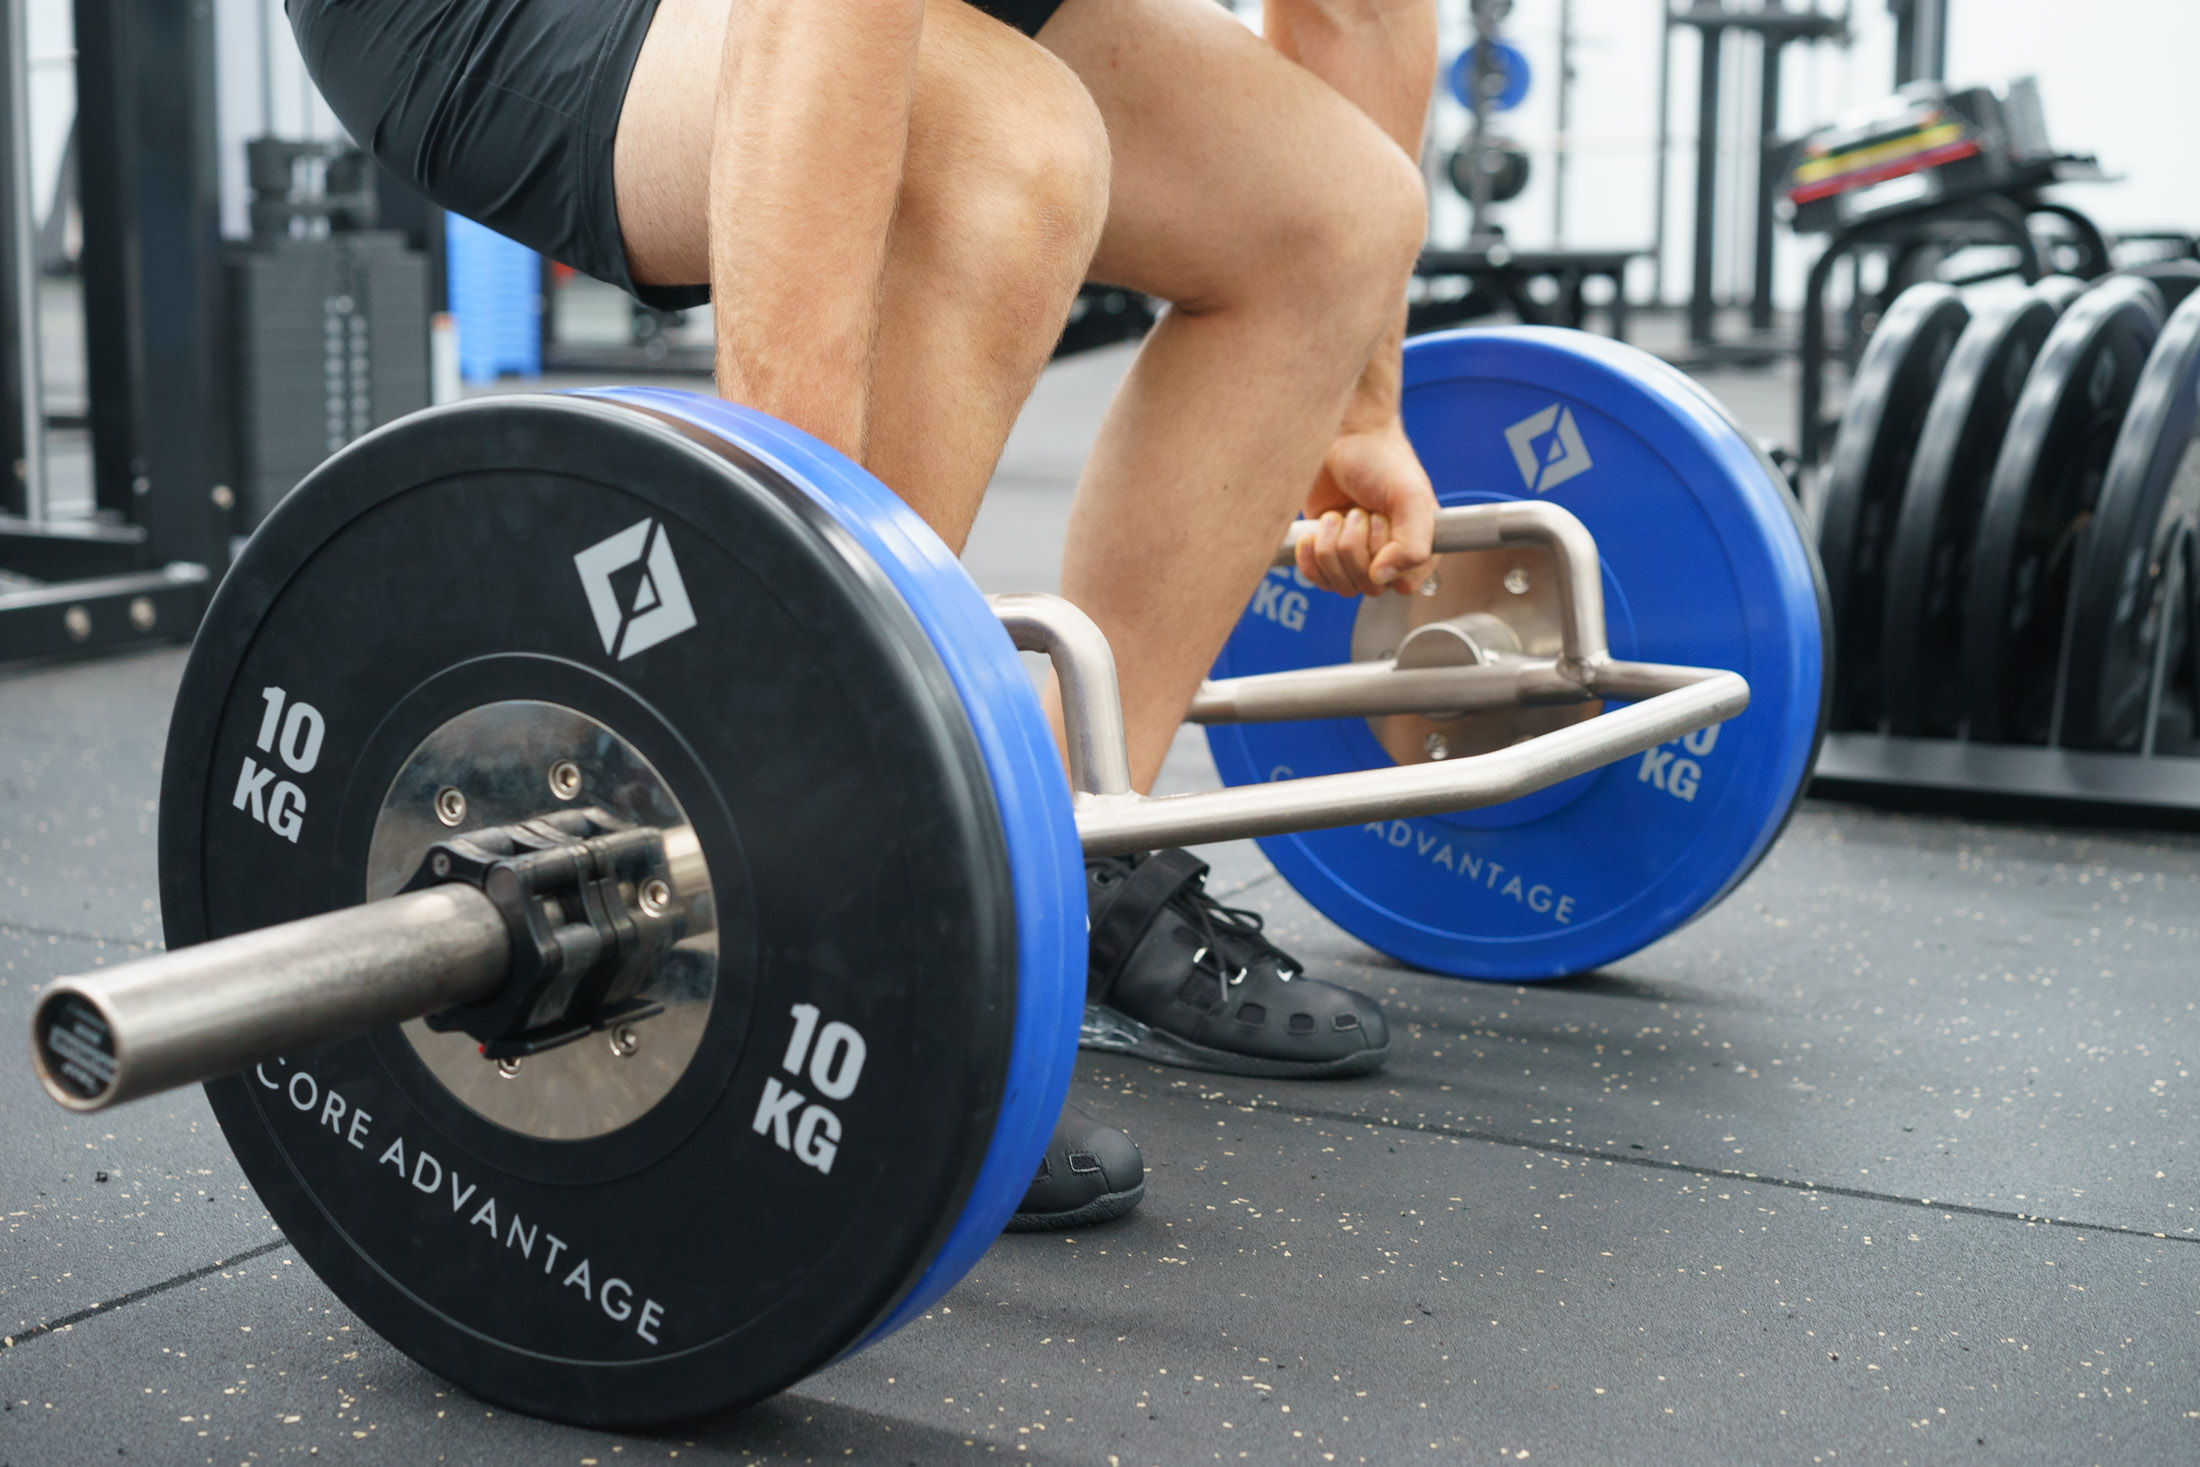 Intent to Move: The secret of explosive athletes